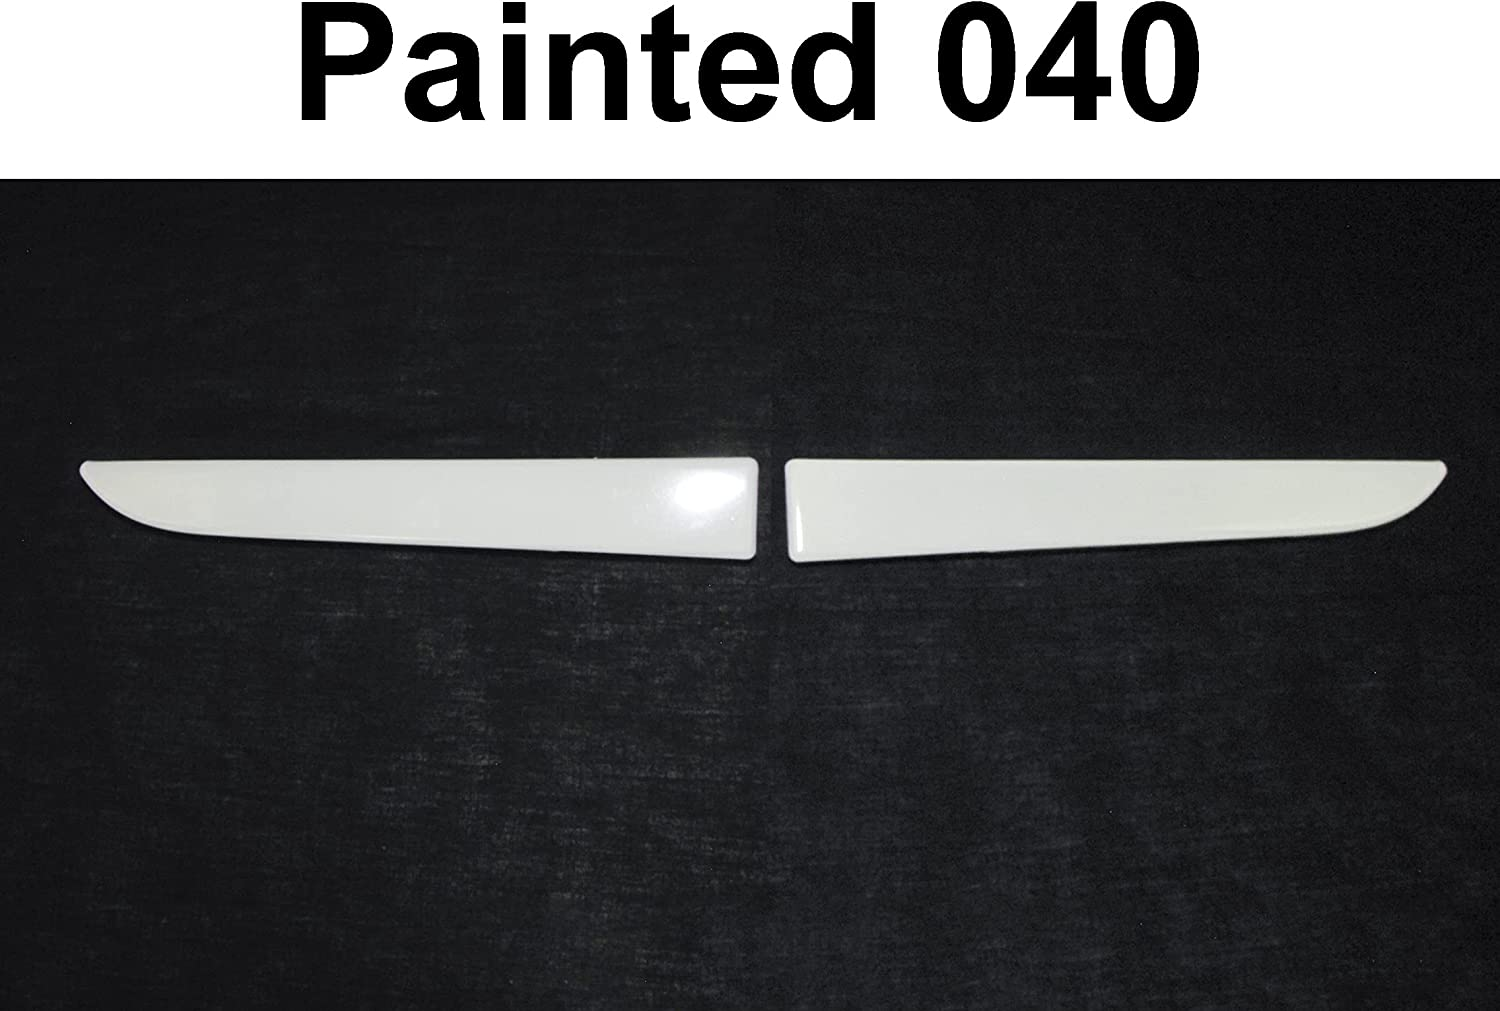 Bundle Painted 040 White Grille Omaha Mall Lower Lh Rh Fits Panel Filler Max 45% OFF